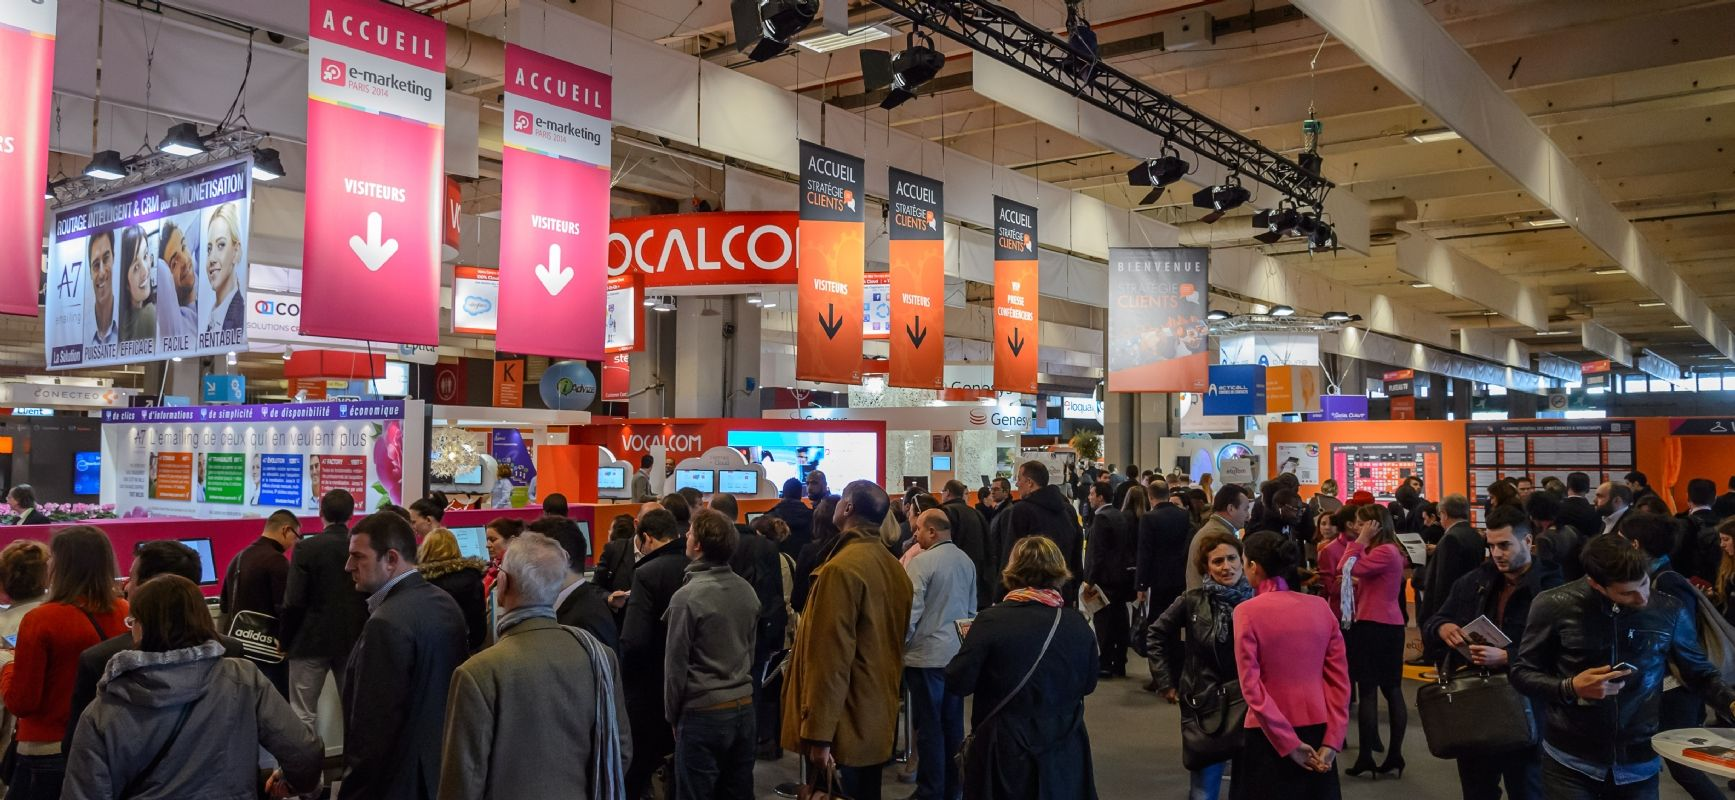 salon e marketing vers le marketing technologique